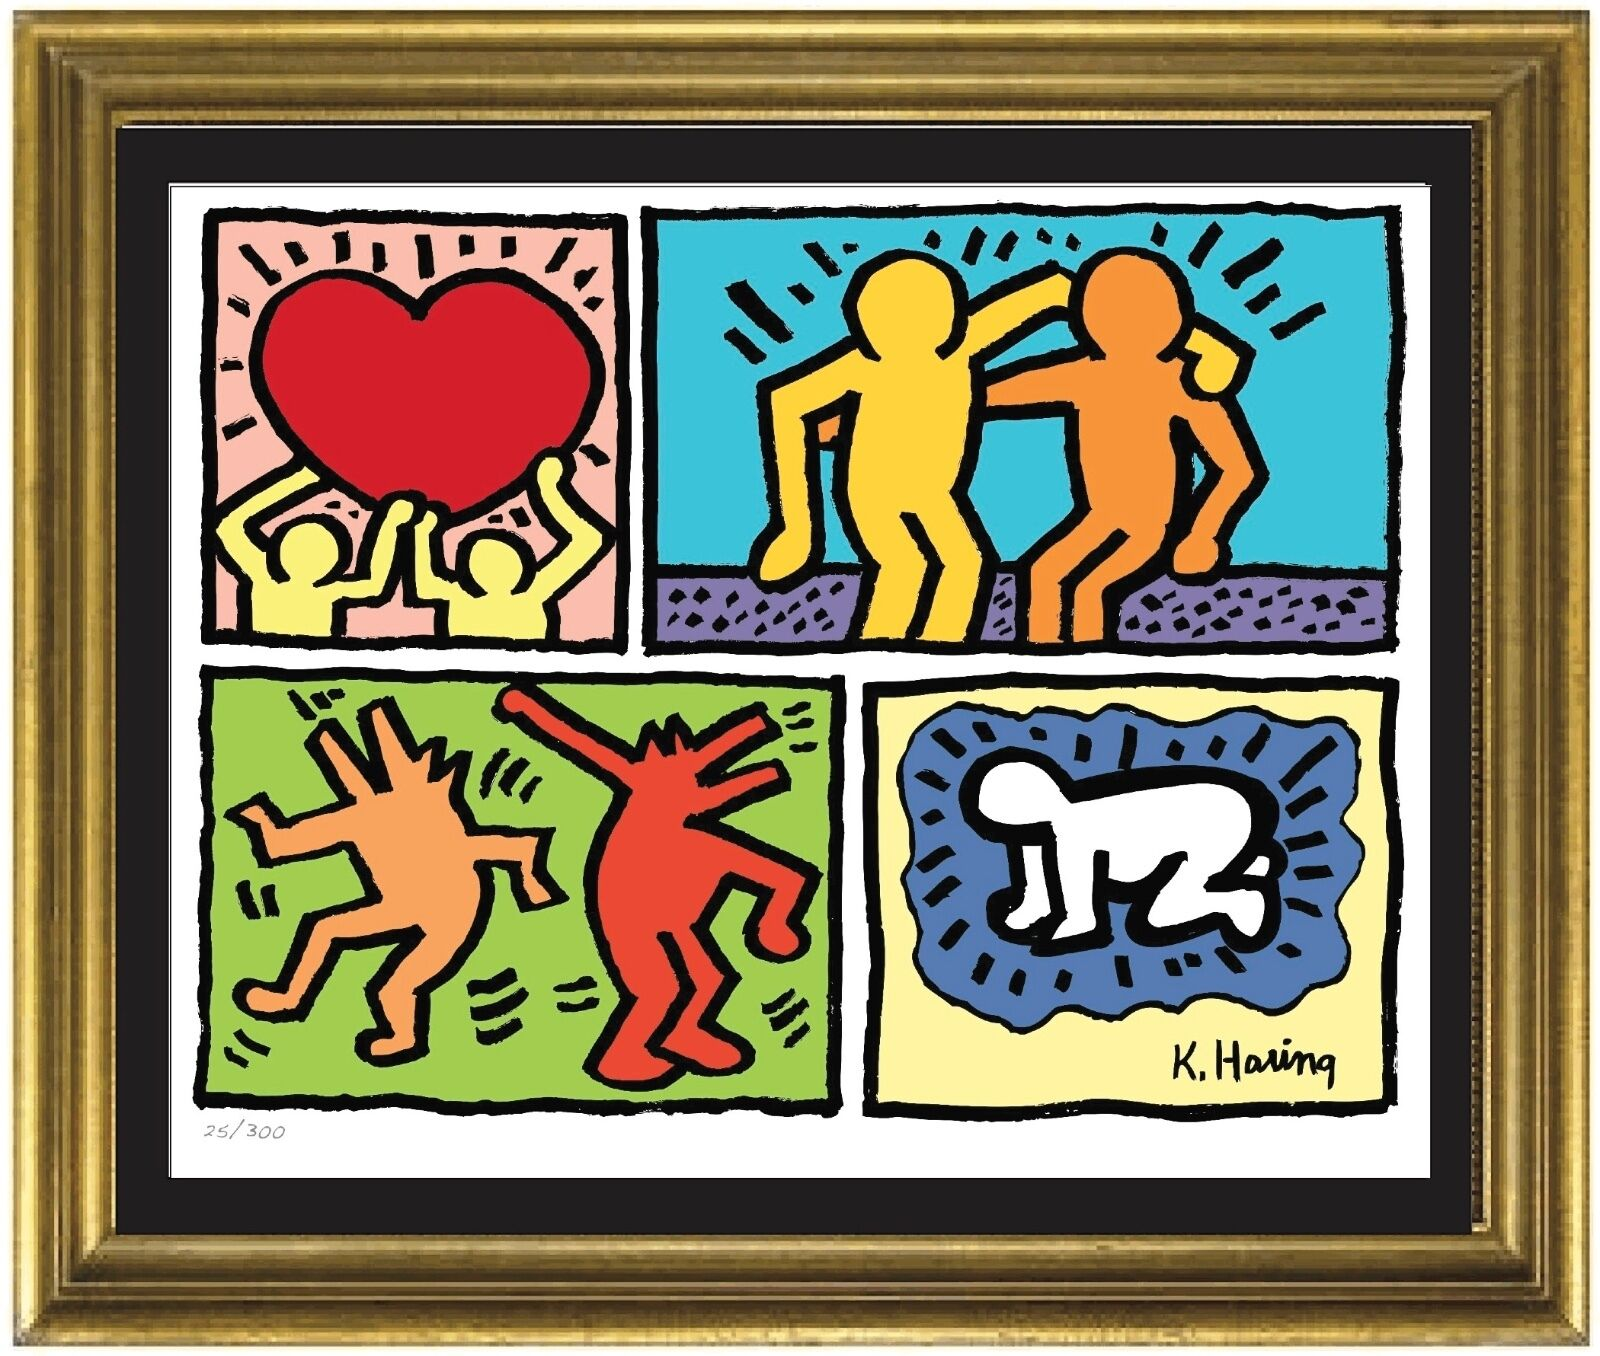 Keith Haring Plate-Signed & Hand-Numbered Limited Edition Litho Print (unframed)